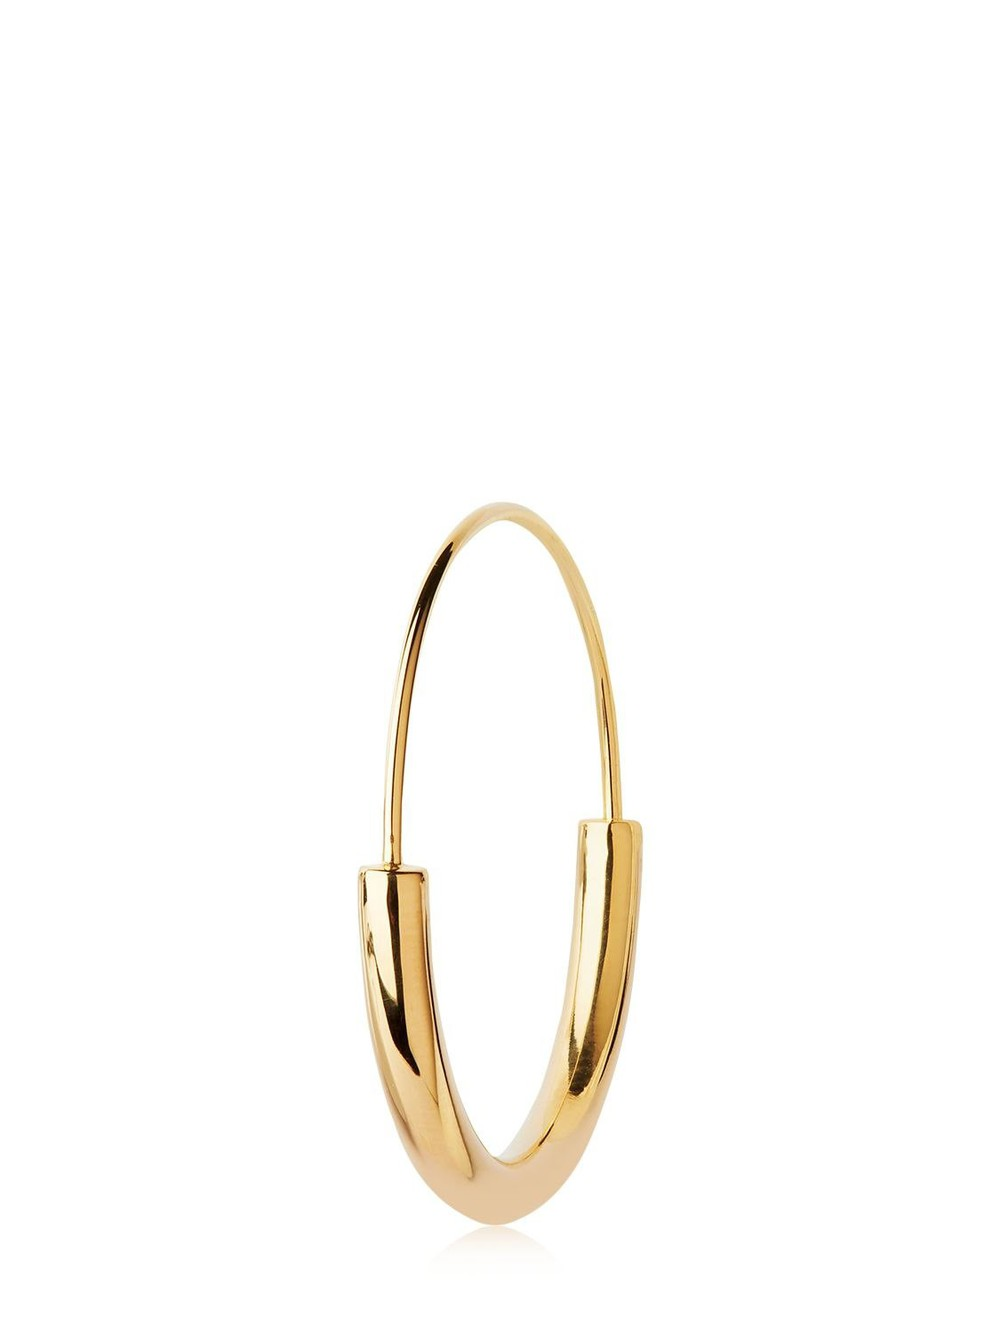 MARIA BLACK Medium Serendipity Hoop Mono Earring in gold